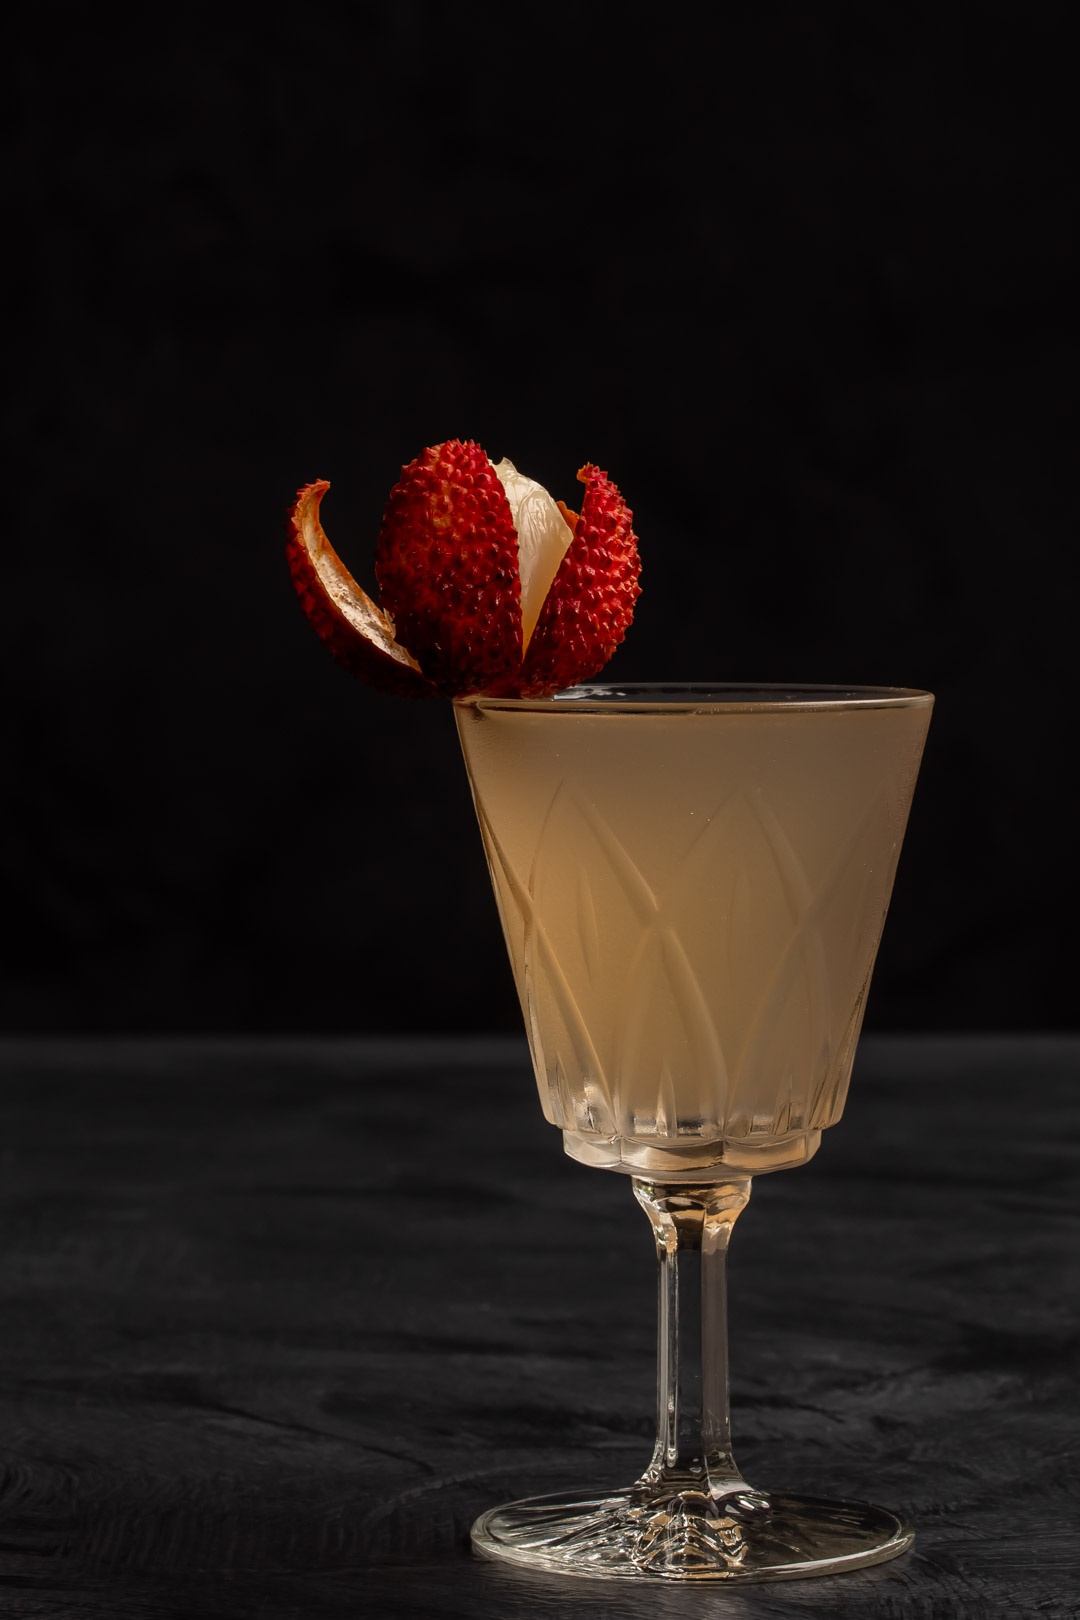 lychee reviver cocktail to right of frame with lychee garnish